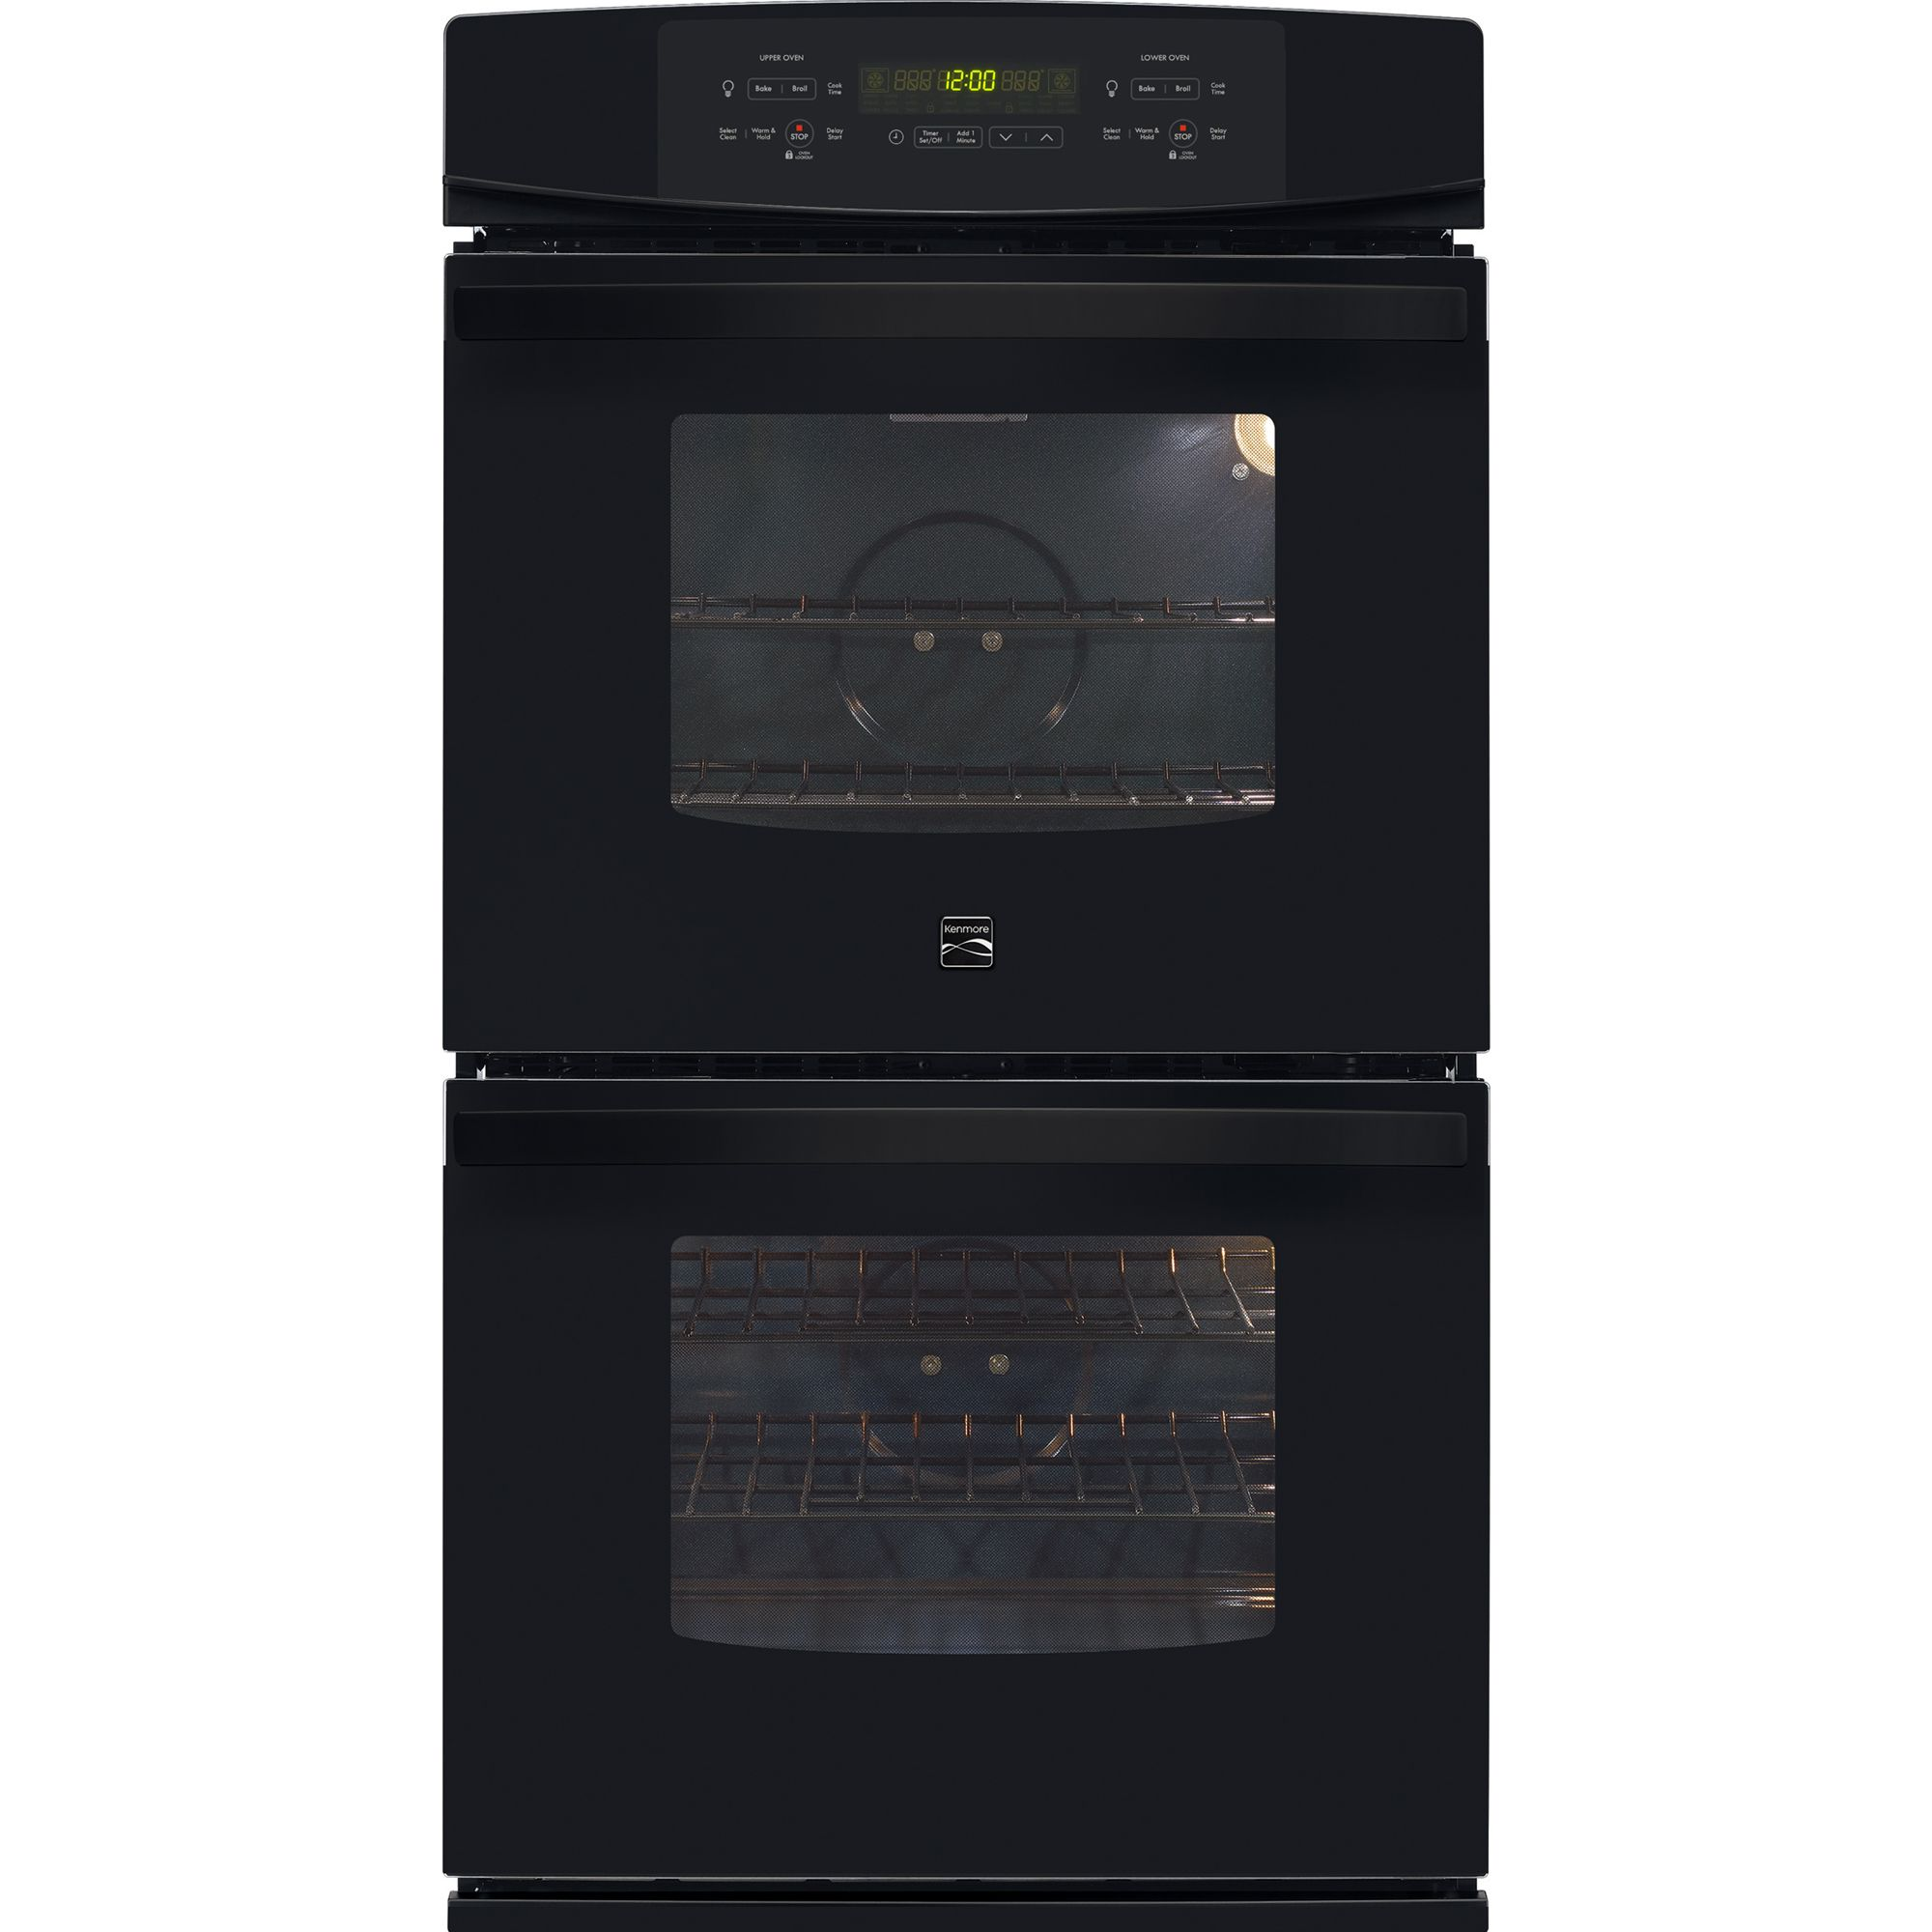 Kenmore 48779 30 SelfClean Double Electric Wall Oven